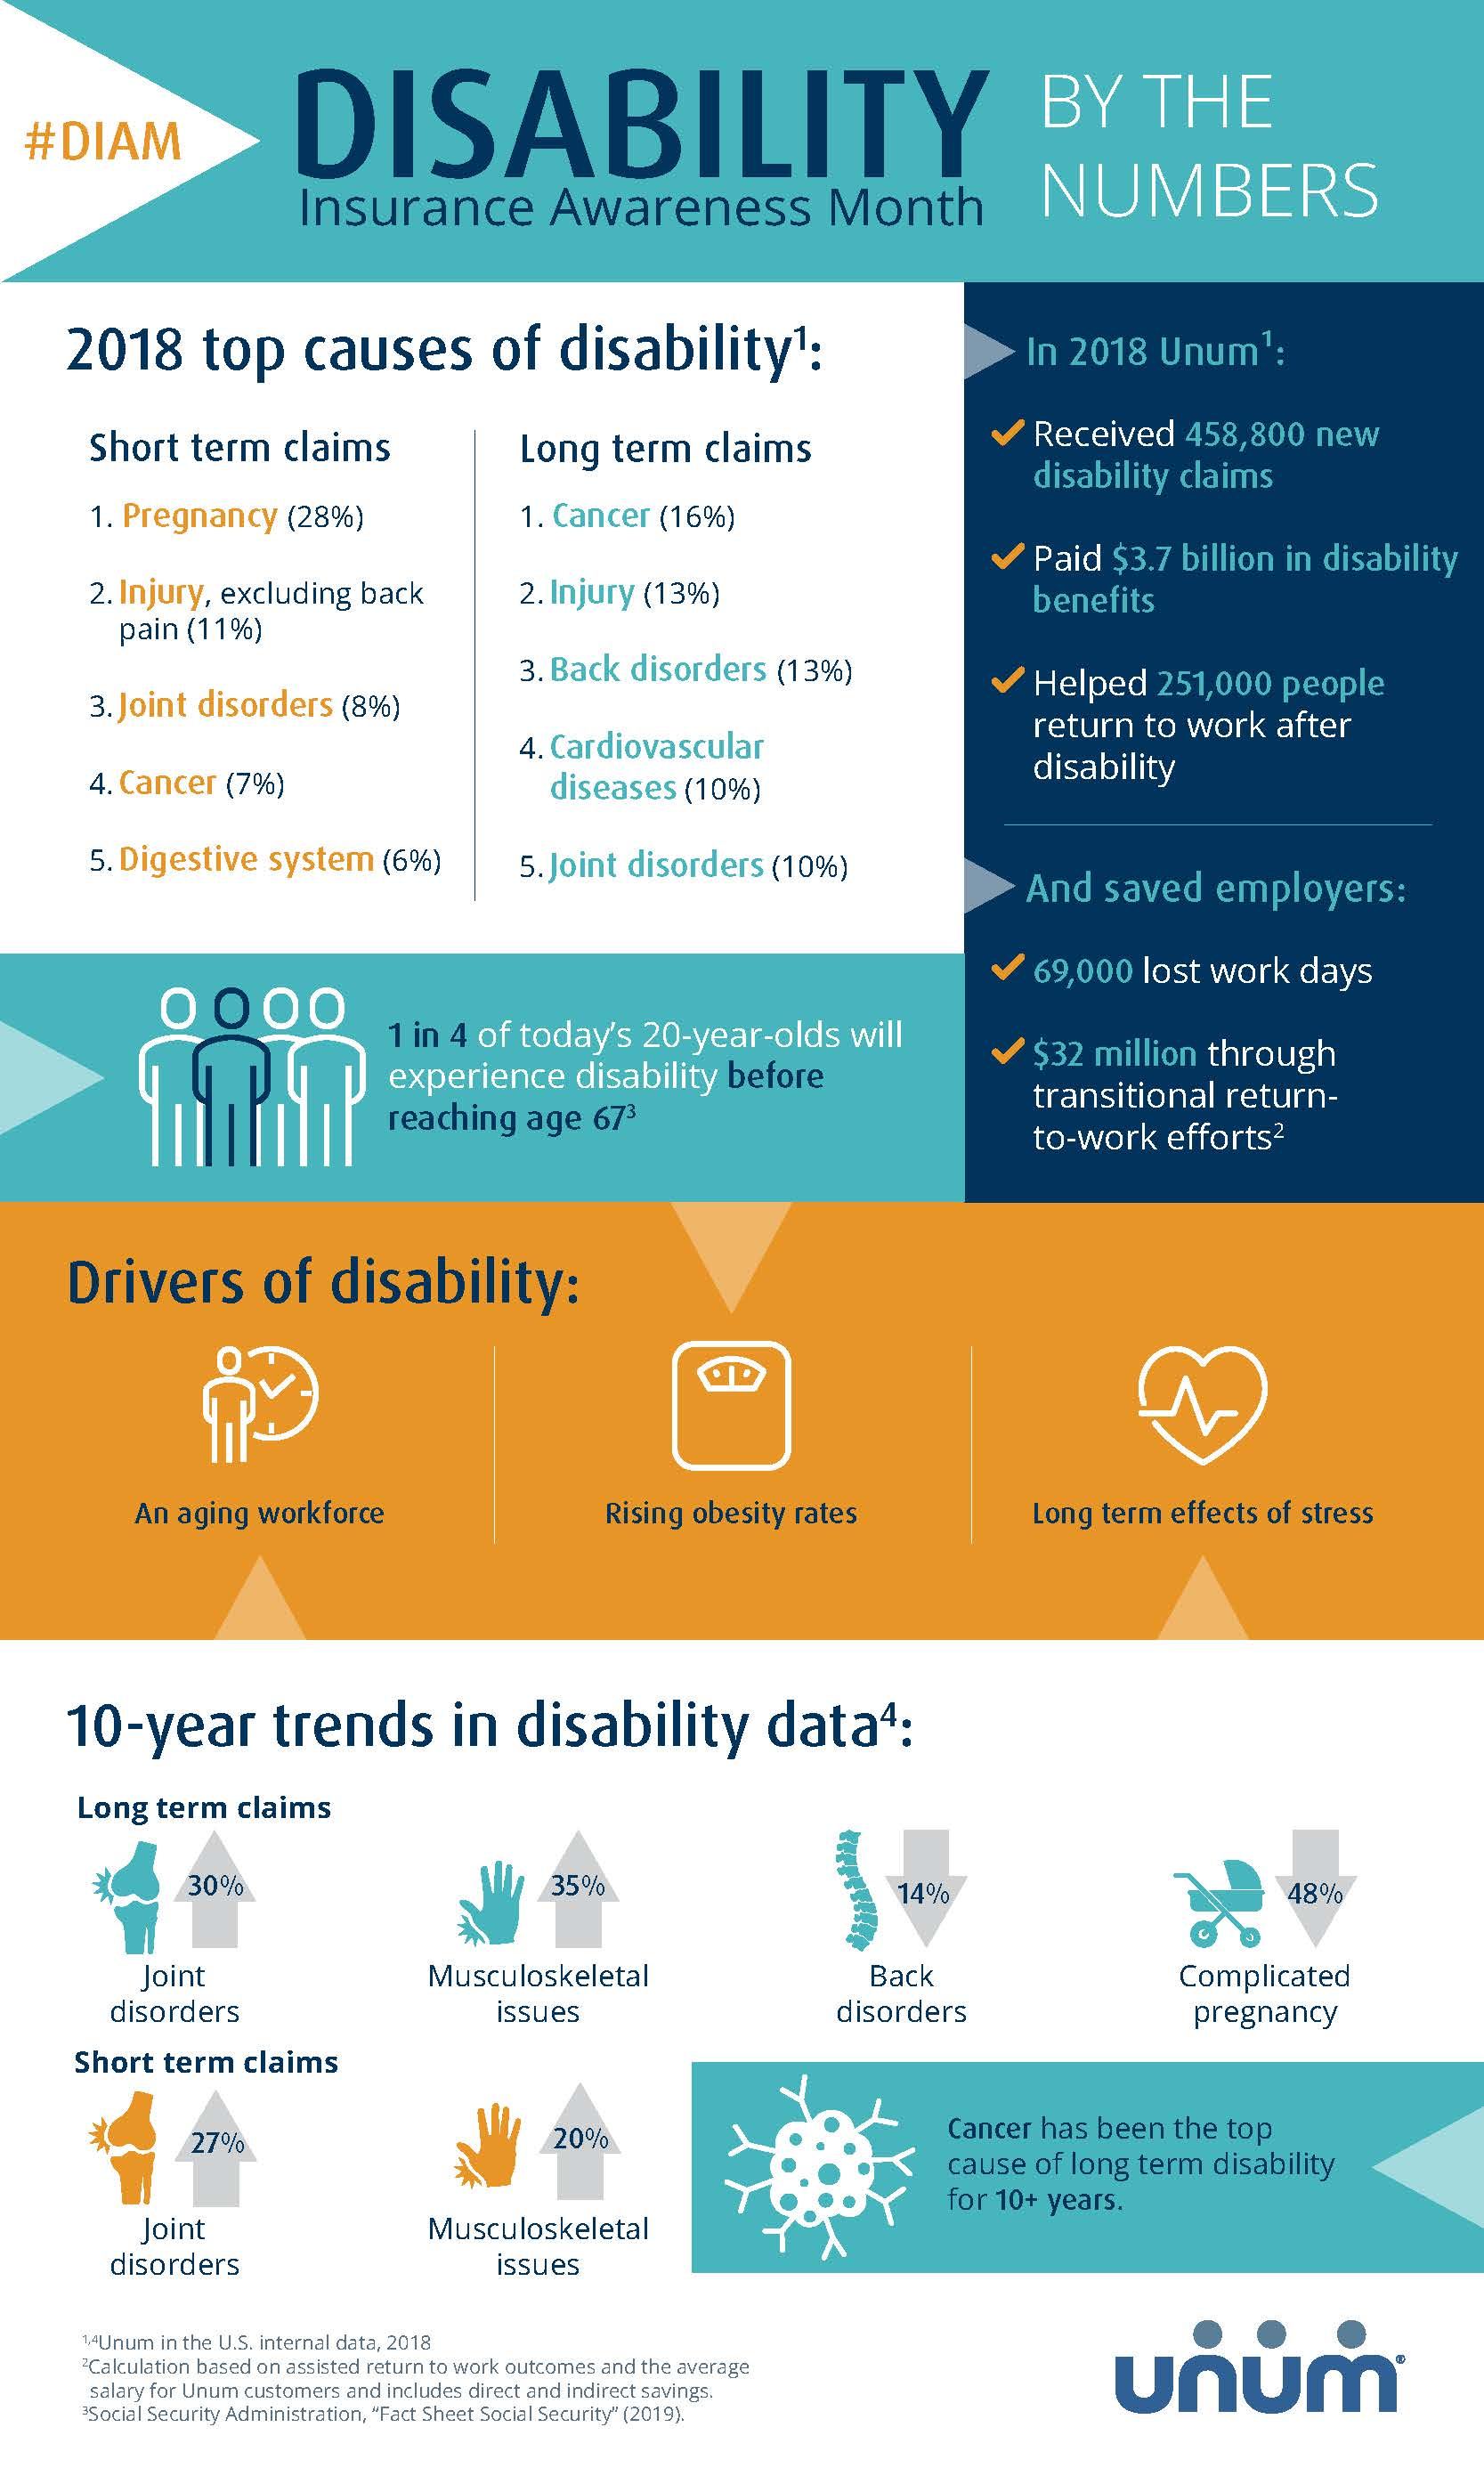 There's a one in four chance a worker will be disabled before retirement, and the top causes of disability are more common than most people think. This infographic shows top causes of disability, key drivers impacting today's workforce, and 10-year trends in disability, according to data from Unum - the world's largest provider of disability insurance.